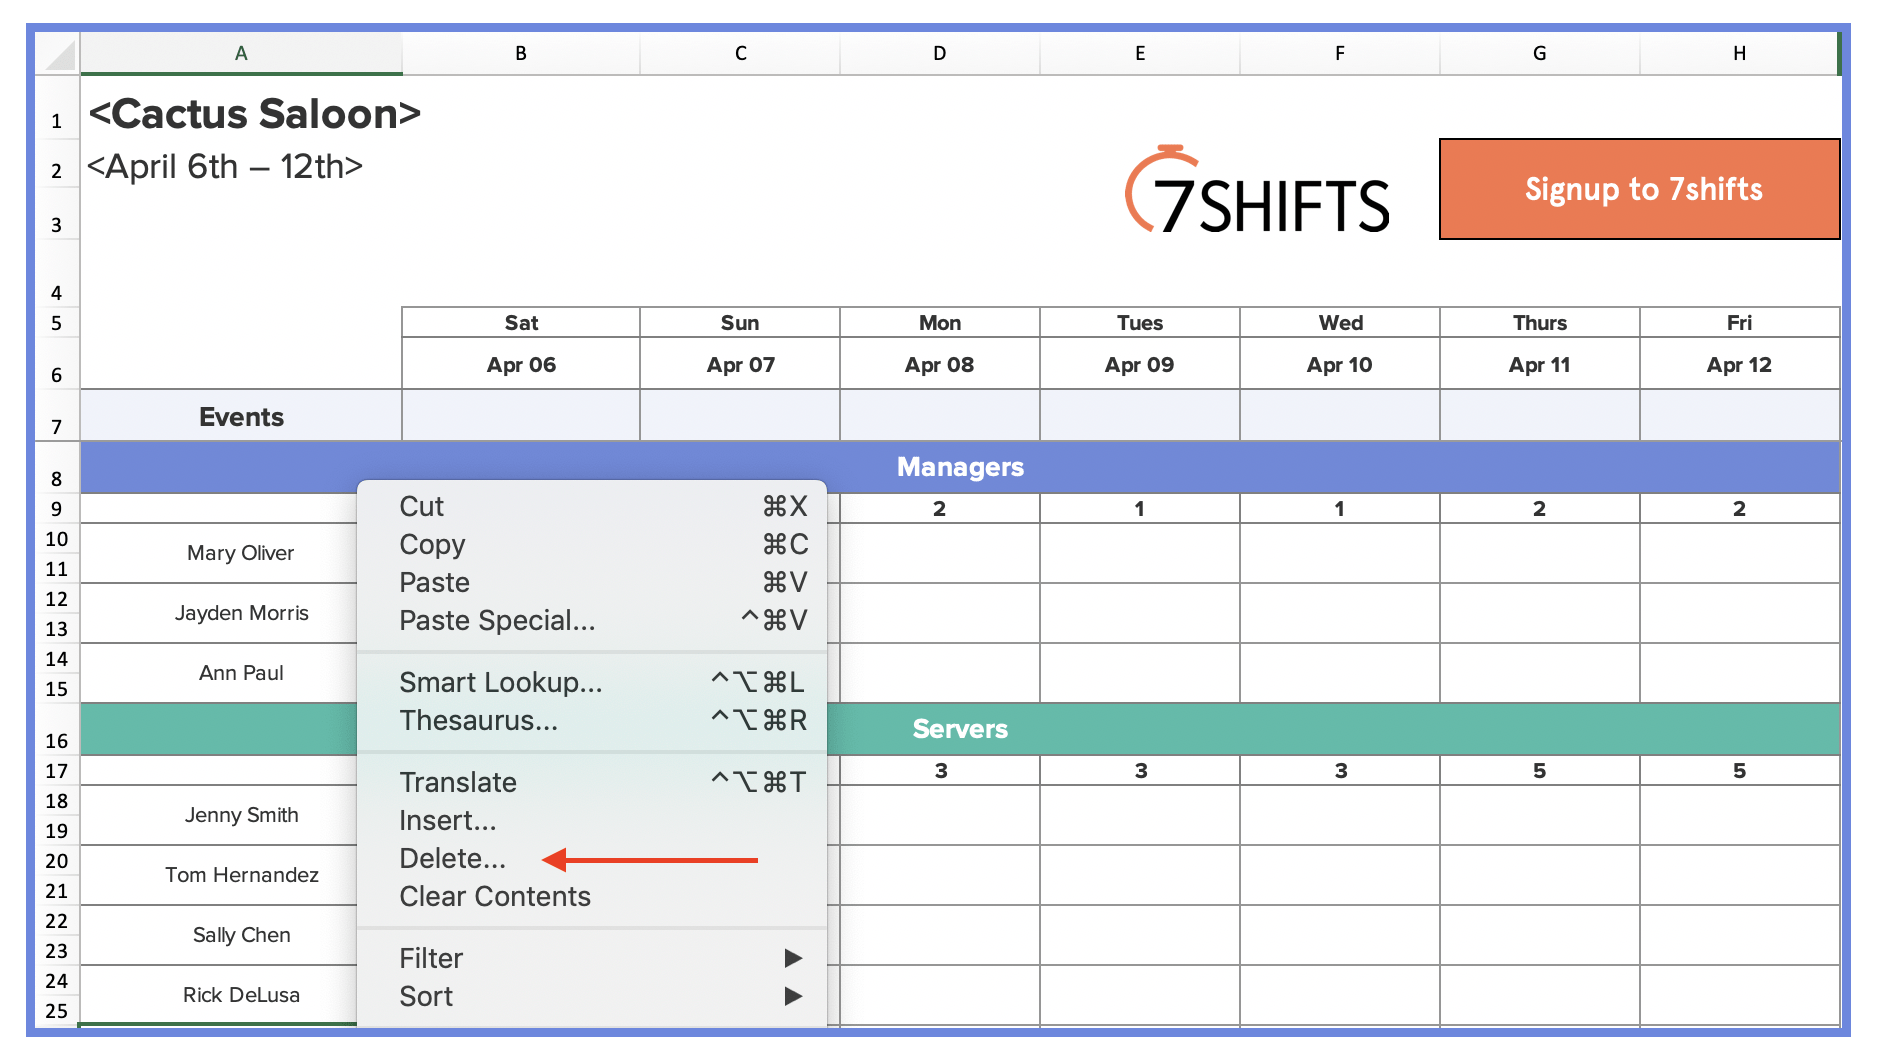 27/02/2020· the restaurant schedule template at the bottom of the article includes head chef, sous chef, line cooks, prep cooks, and dishwashers. How To Make A Restaurant Work Schedule With Free Excel Template 7shifts